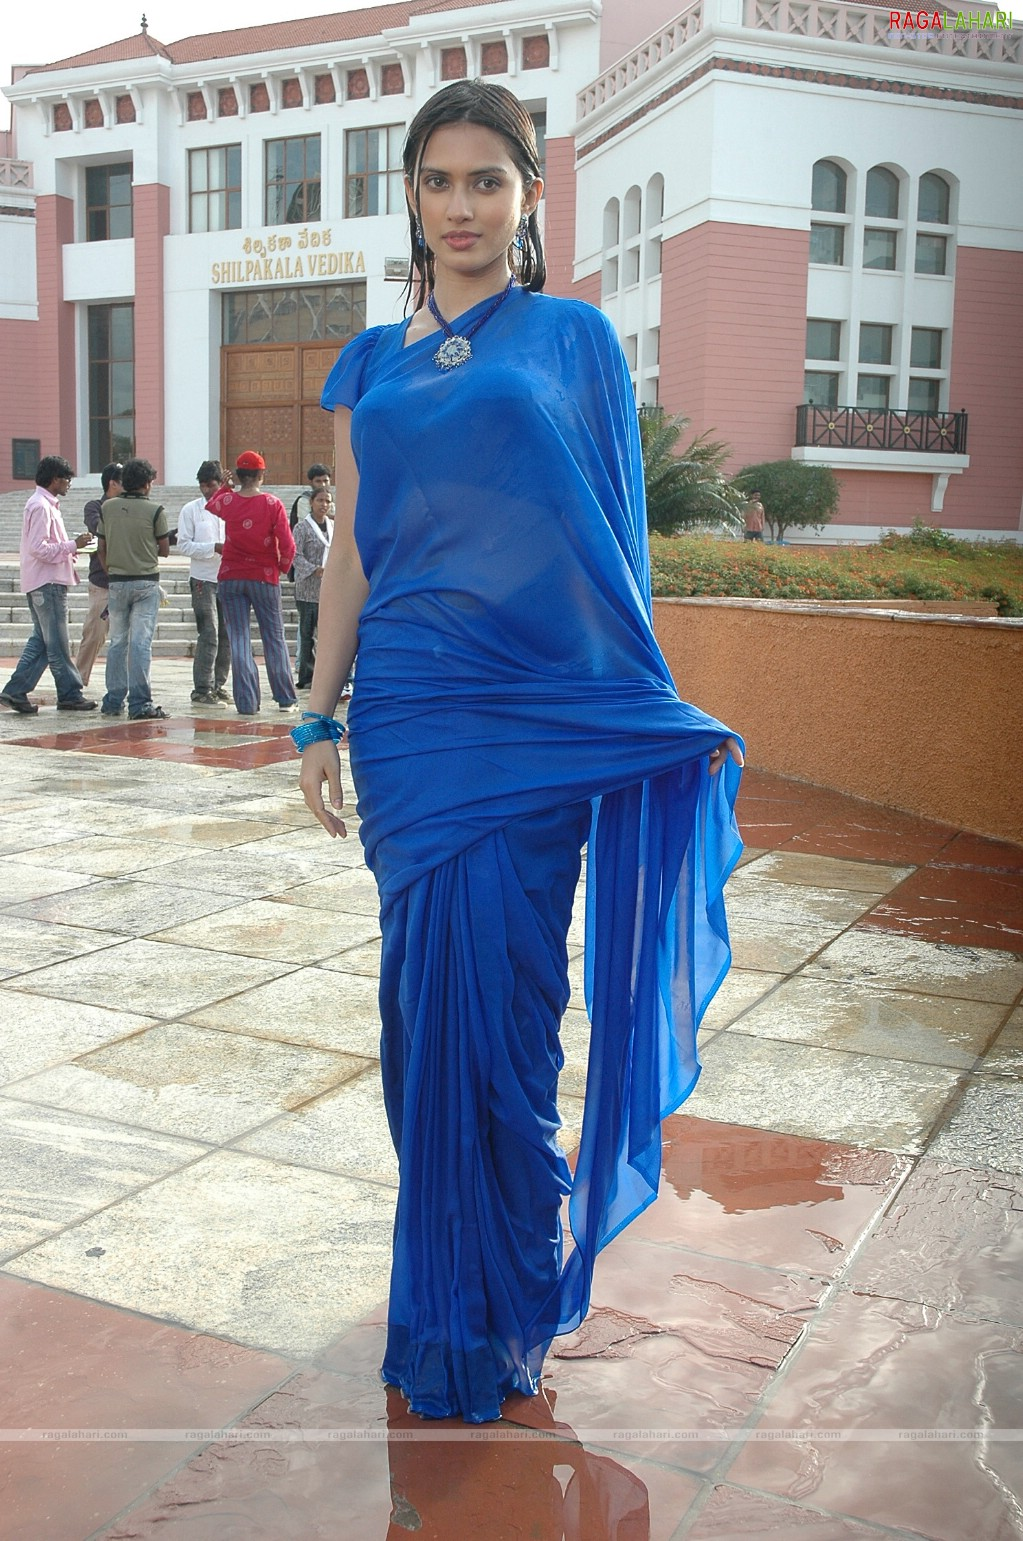 Bollywood Entertainment !!!: Gowri Pandit boobs show in wet blue saree